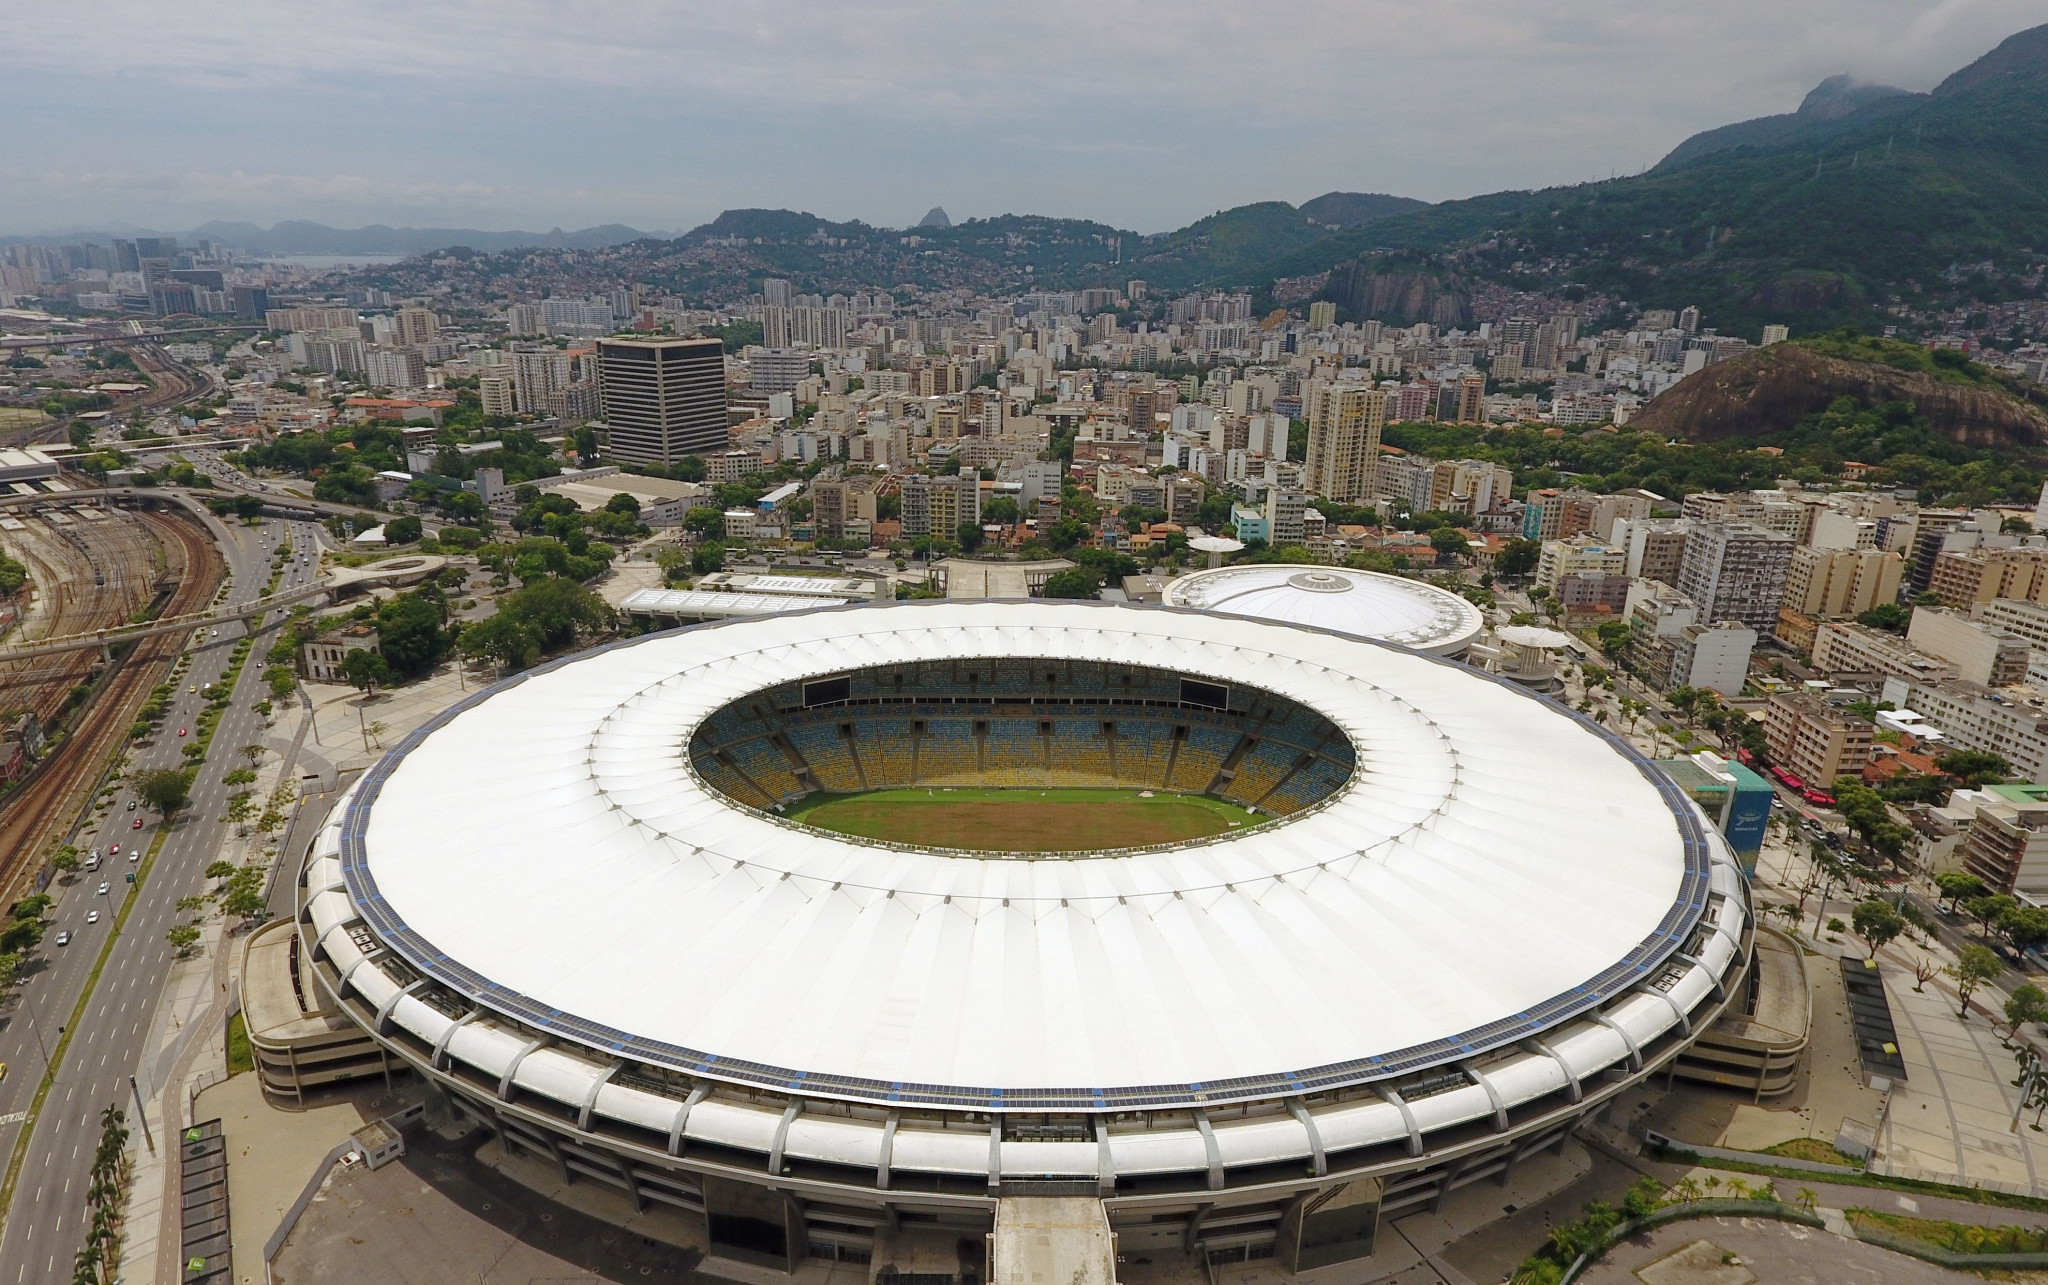 The Maracanã has been the scene of numerous problems since Rio 2016 ©Getty Images